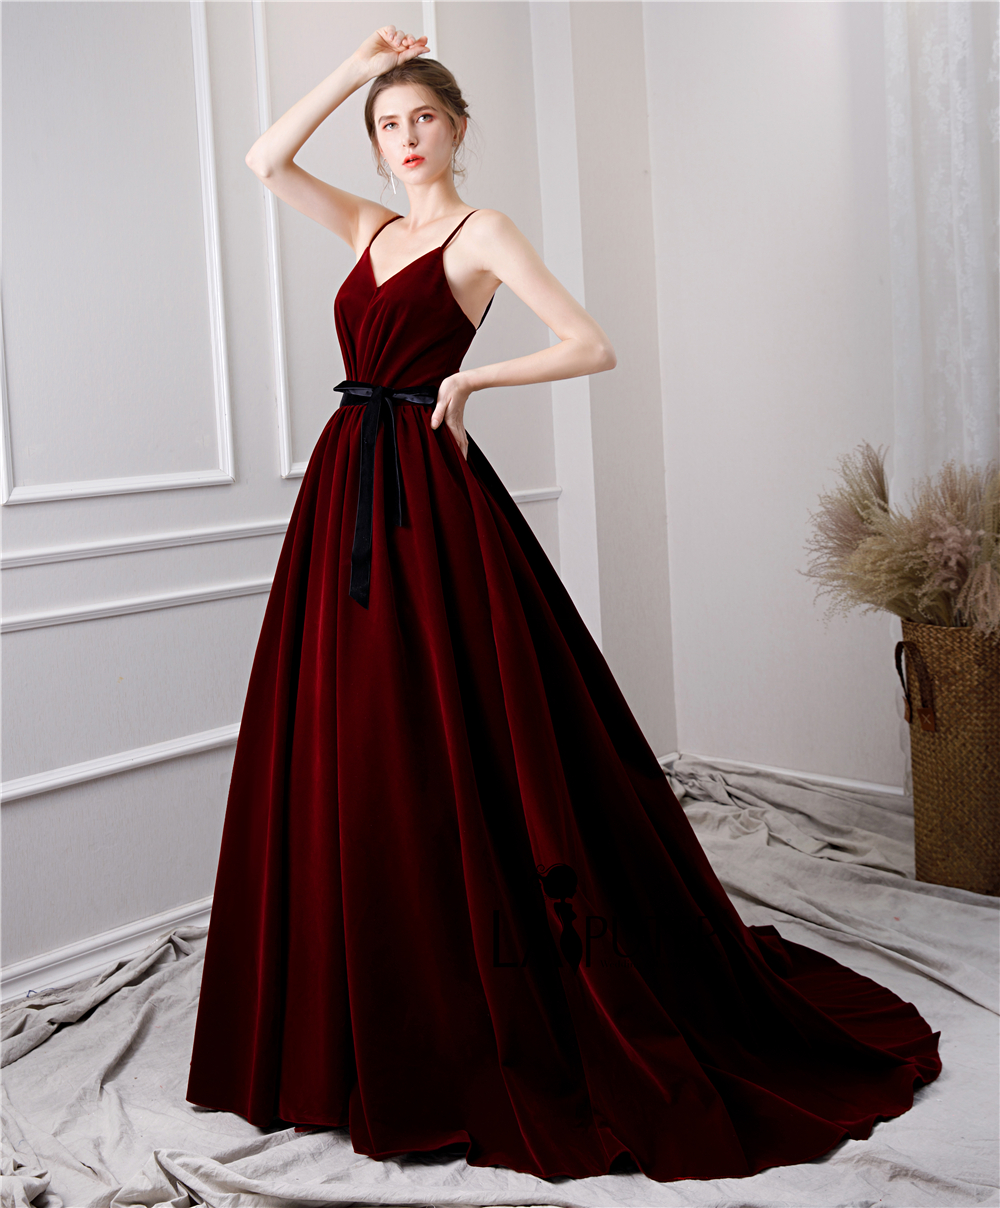 a67d83068a8 Wedding Dress Burgundy Sash - Gomes Weine AG